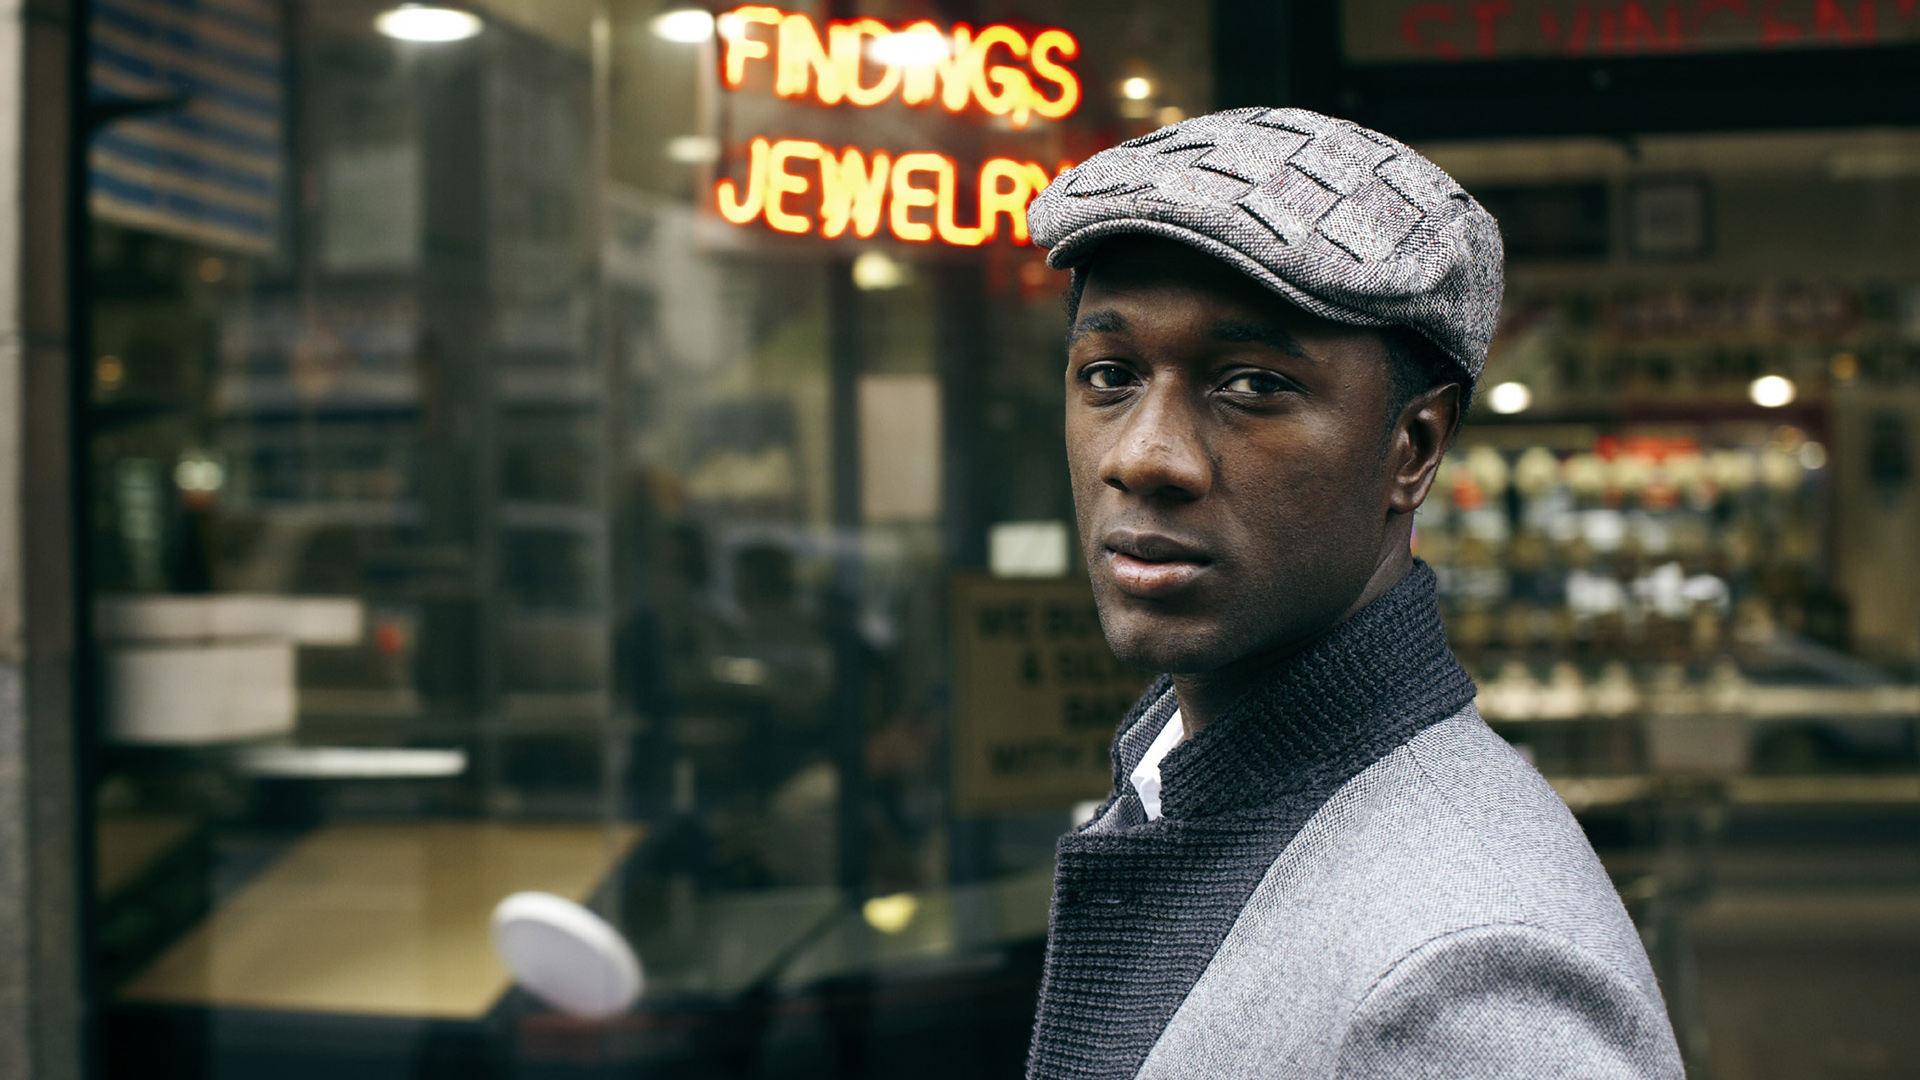 Hello World av Aloe Blacc